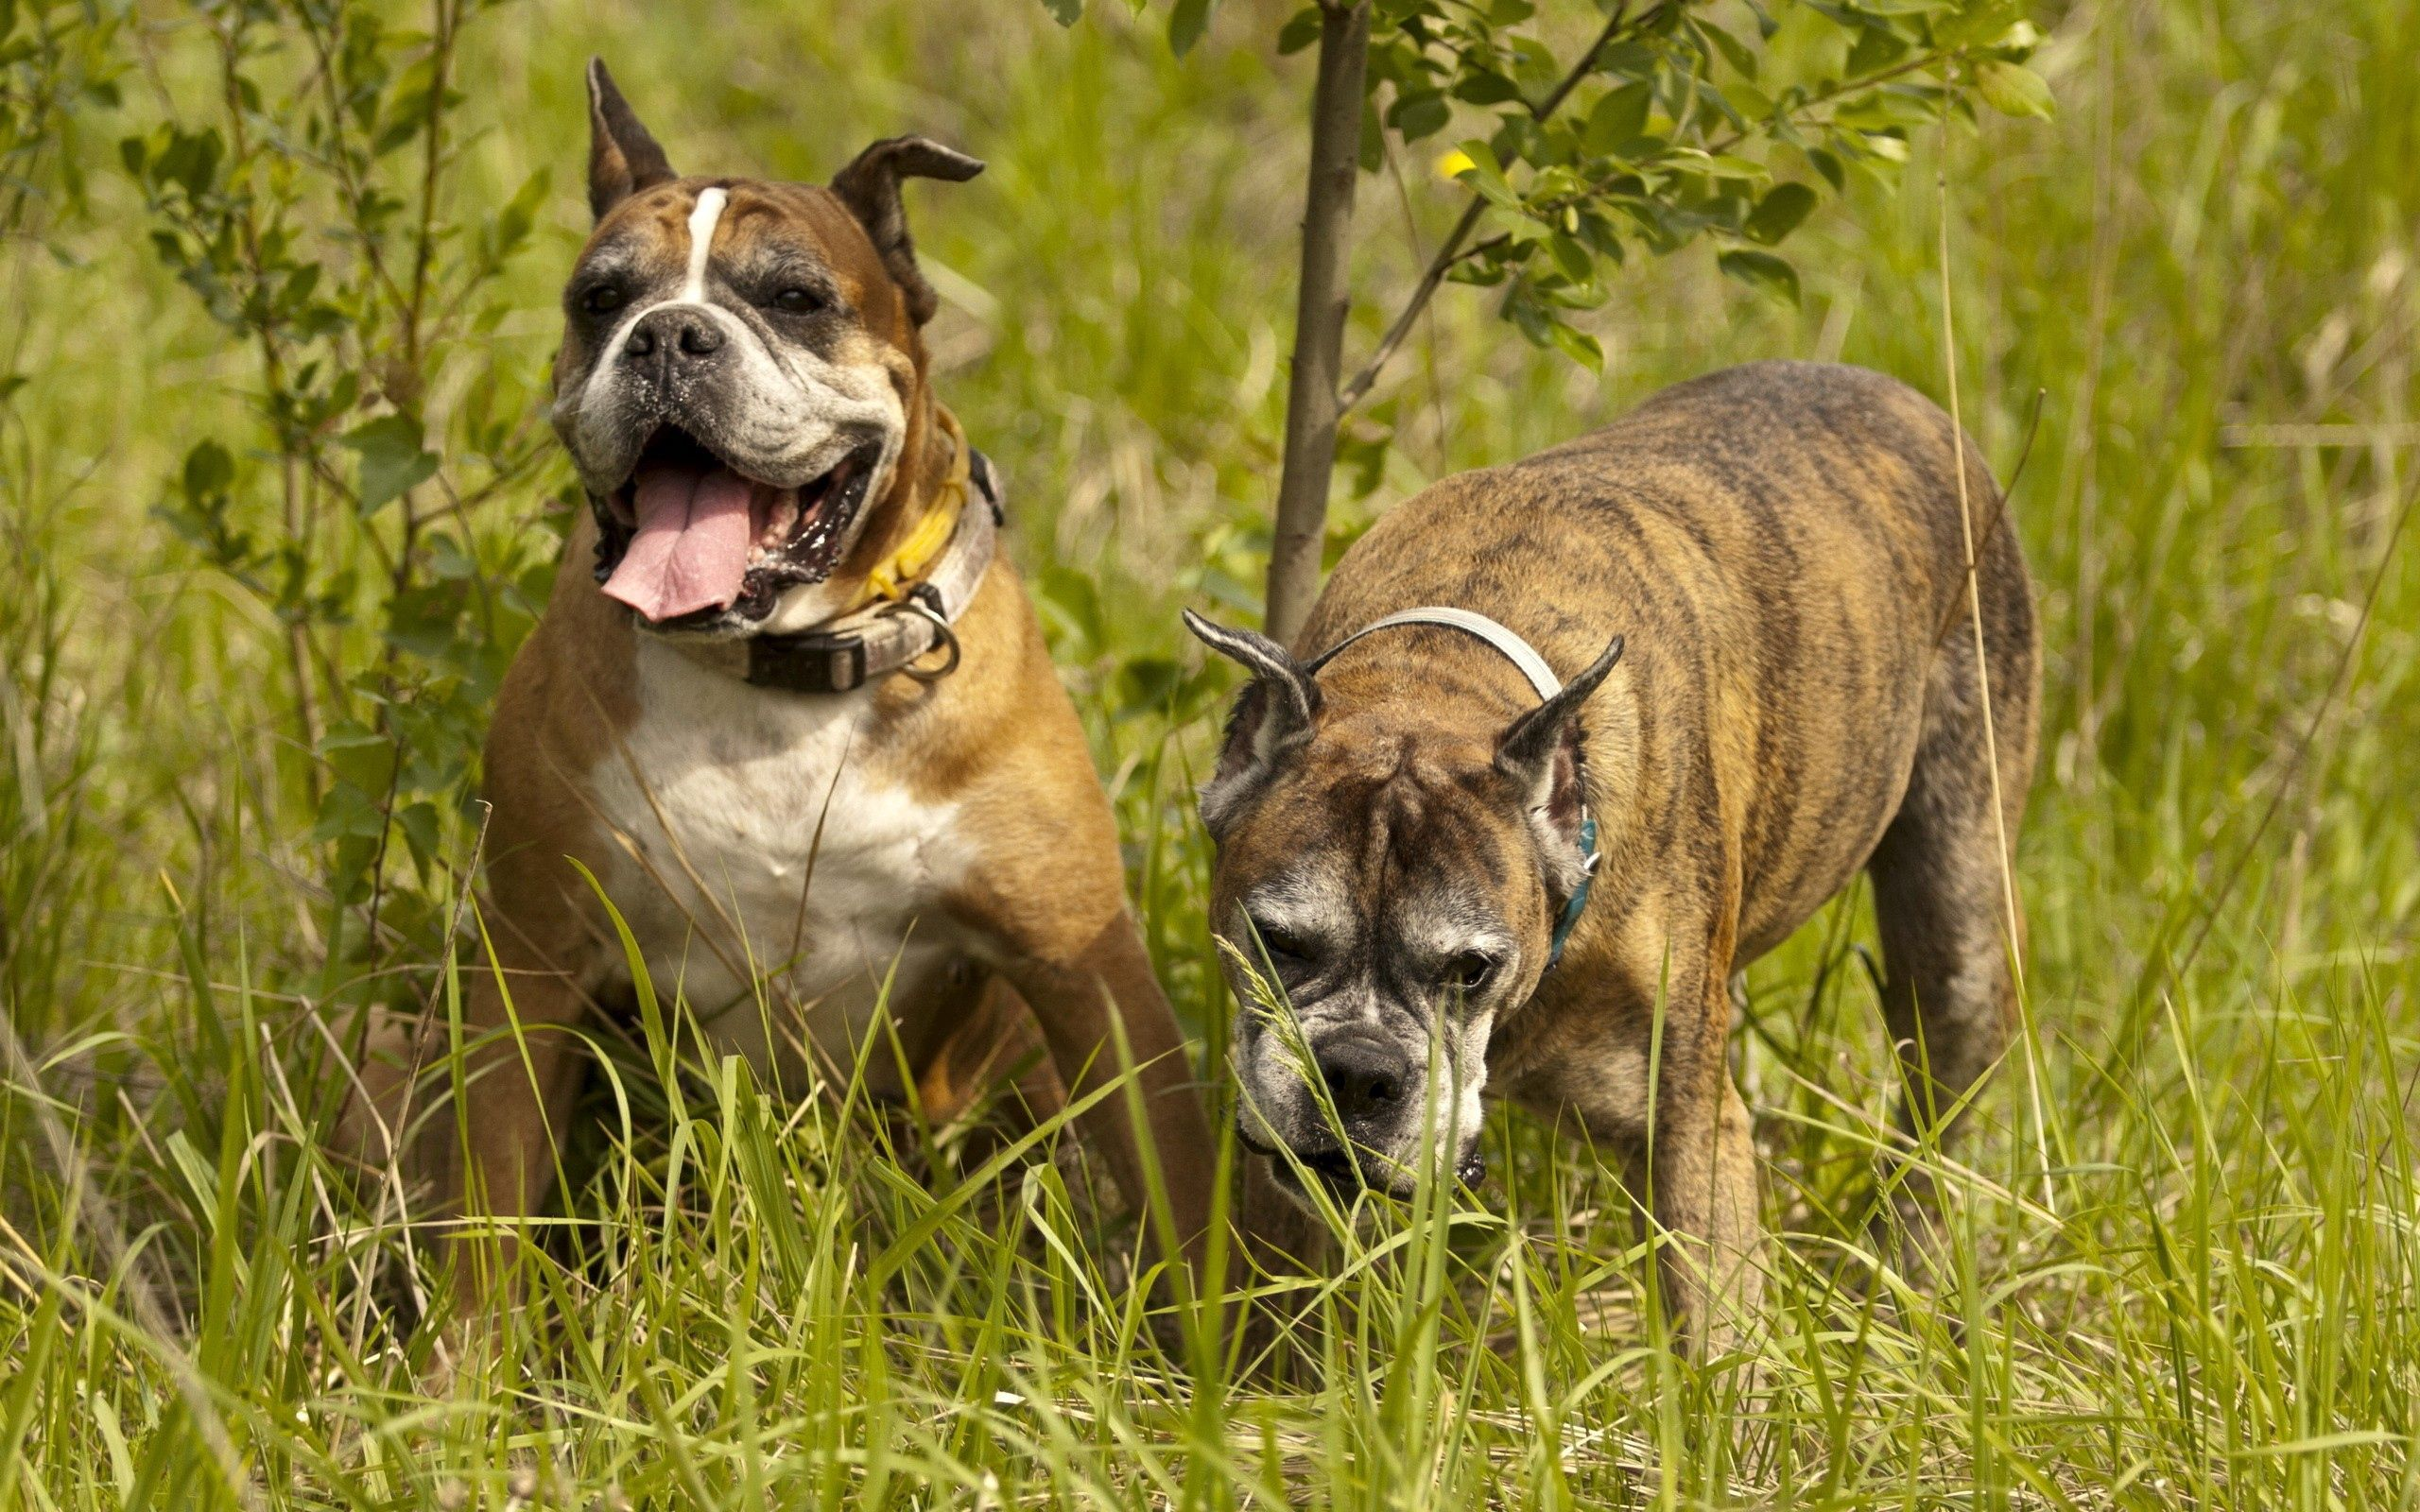 136449 download wallpaper Animals, Dogs, Couple, Pair, Grass, Stroll screensavers and pictures for free